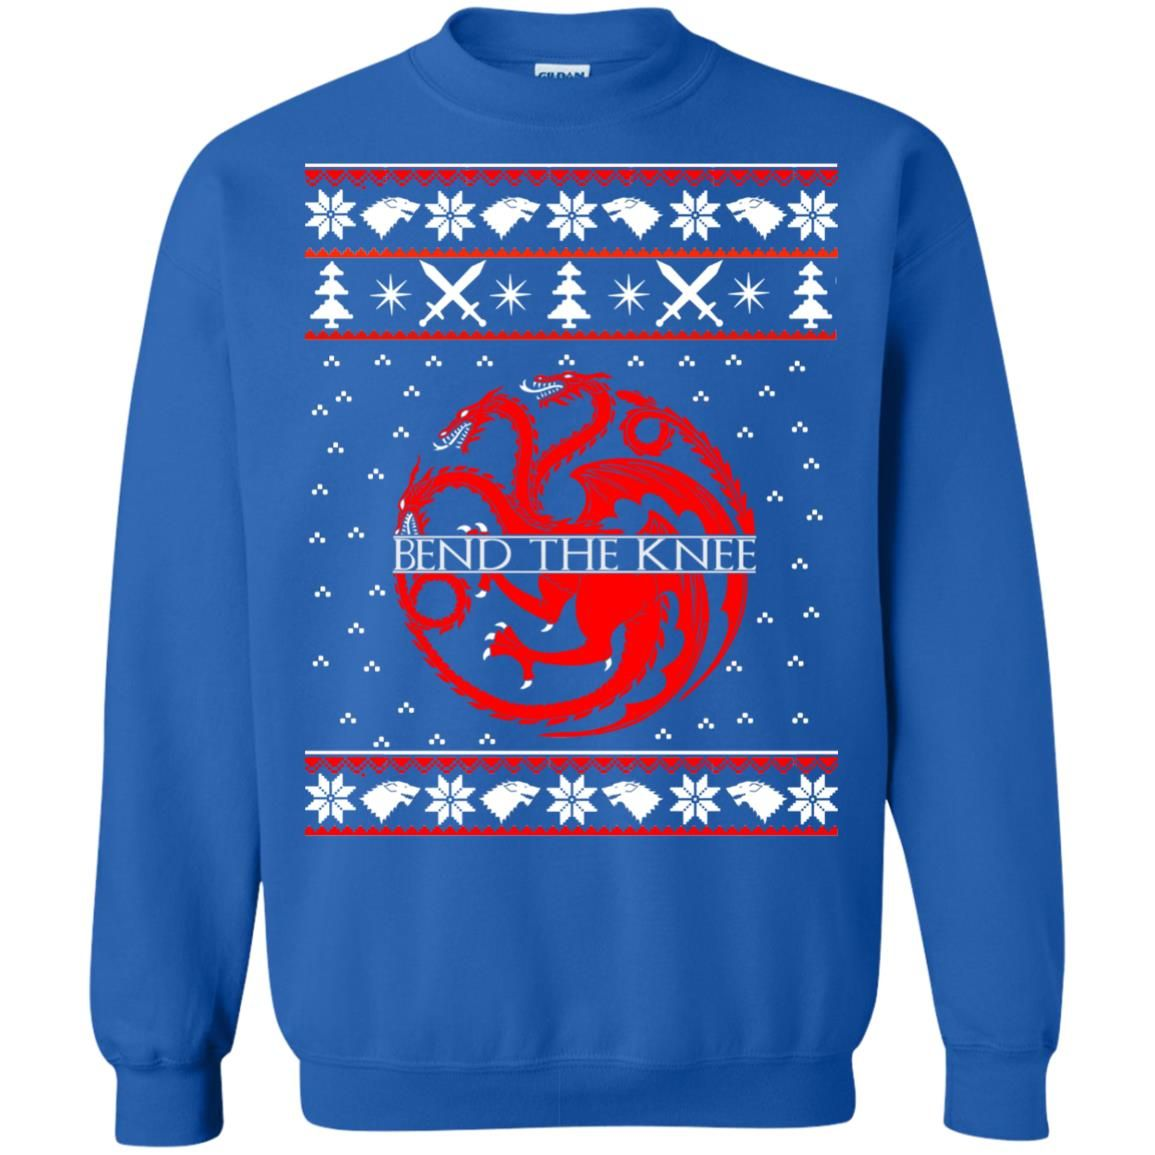 image 872 - Game of Thrones Bend the knee Christmas sweater, long sleeve